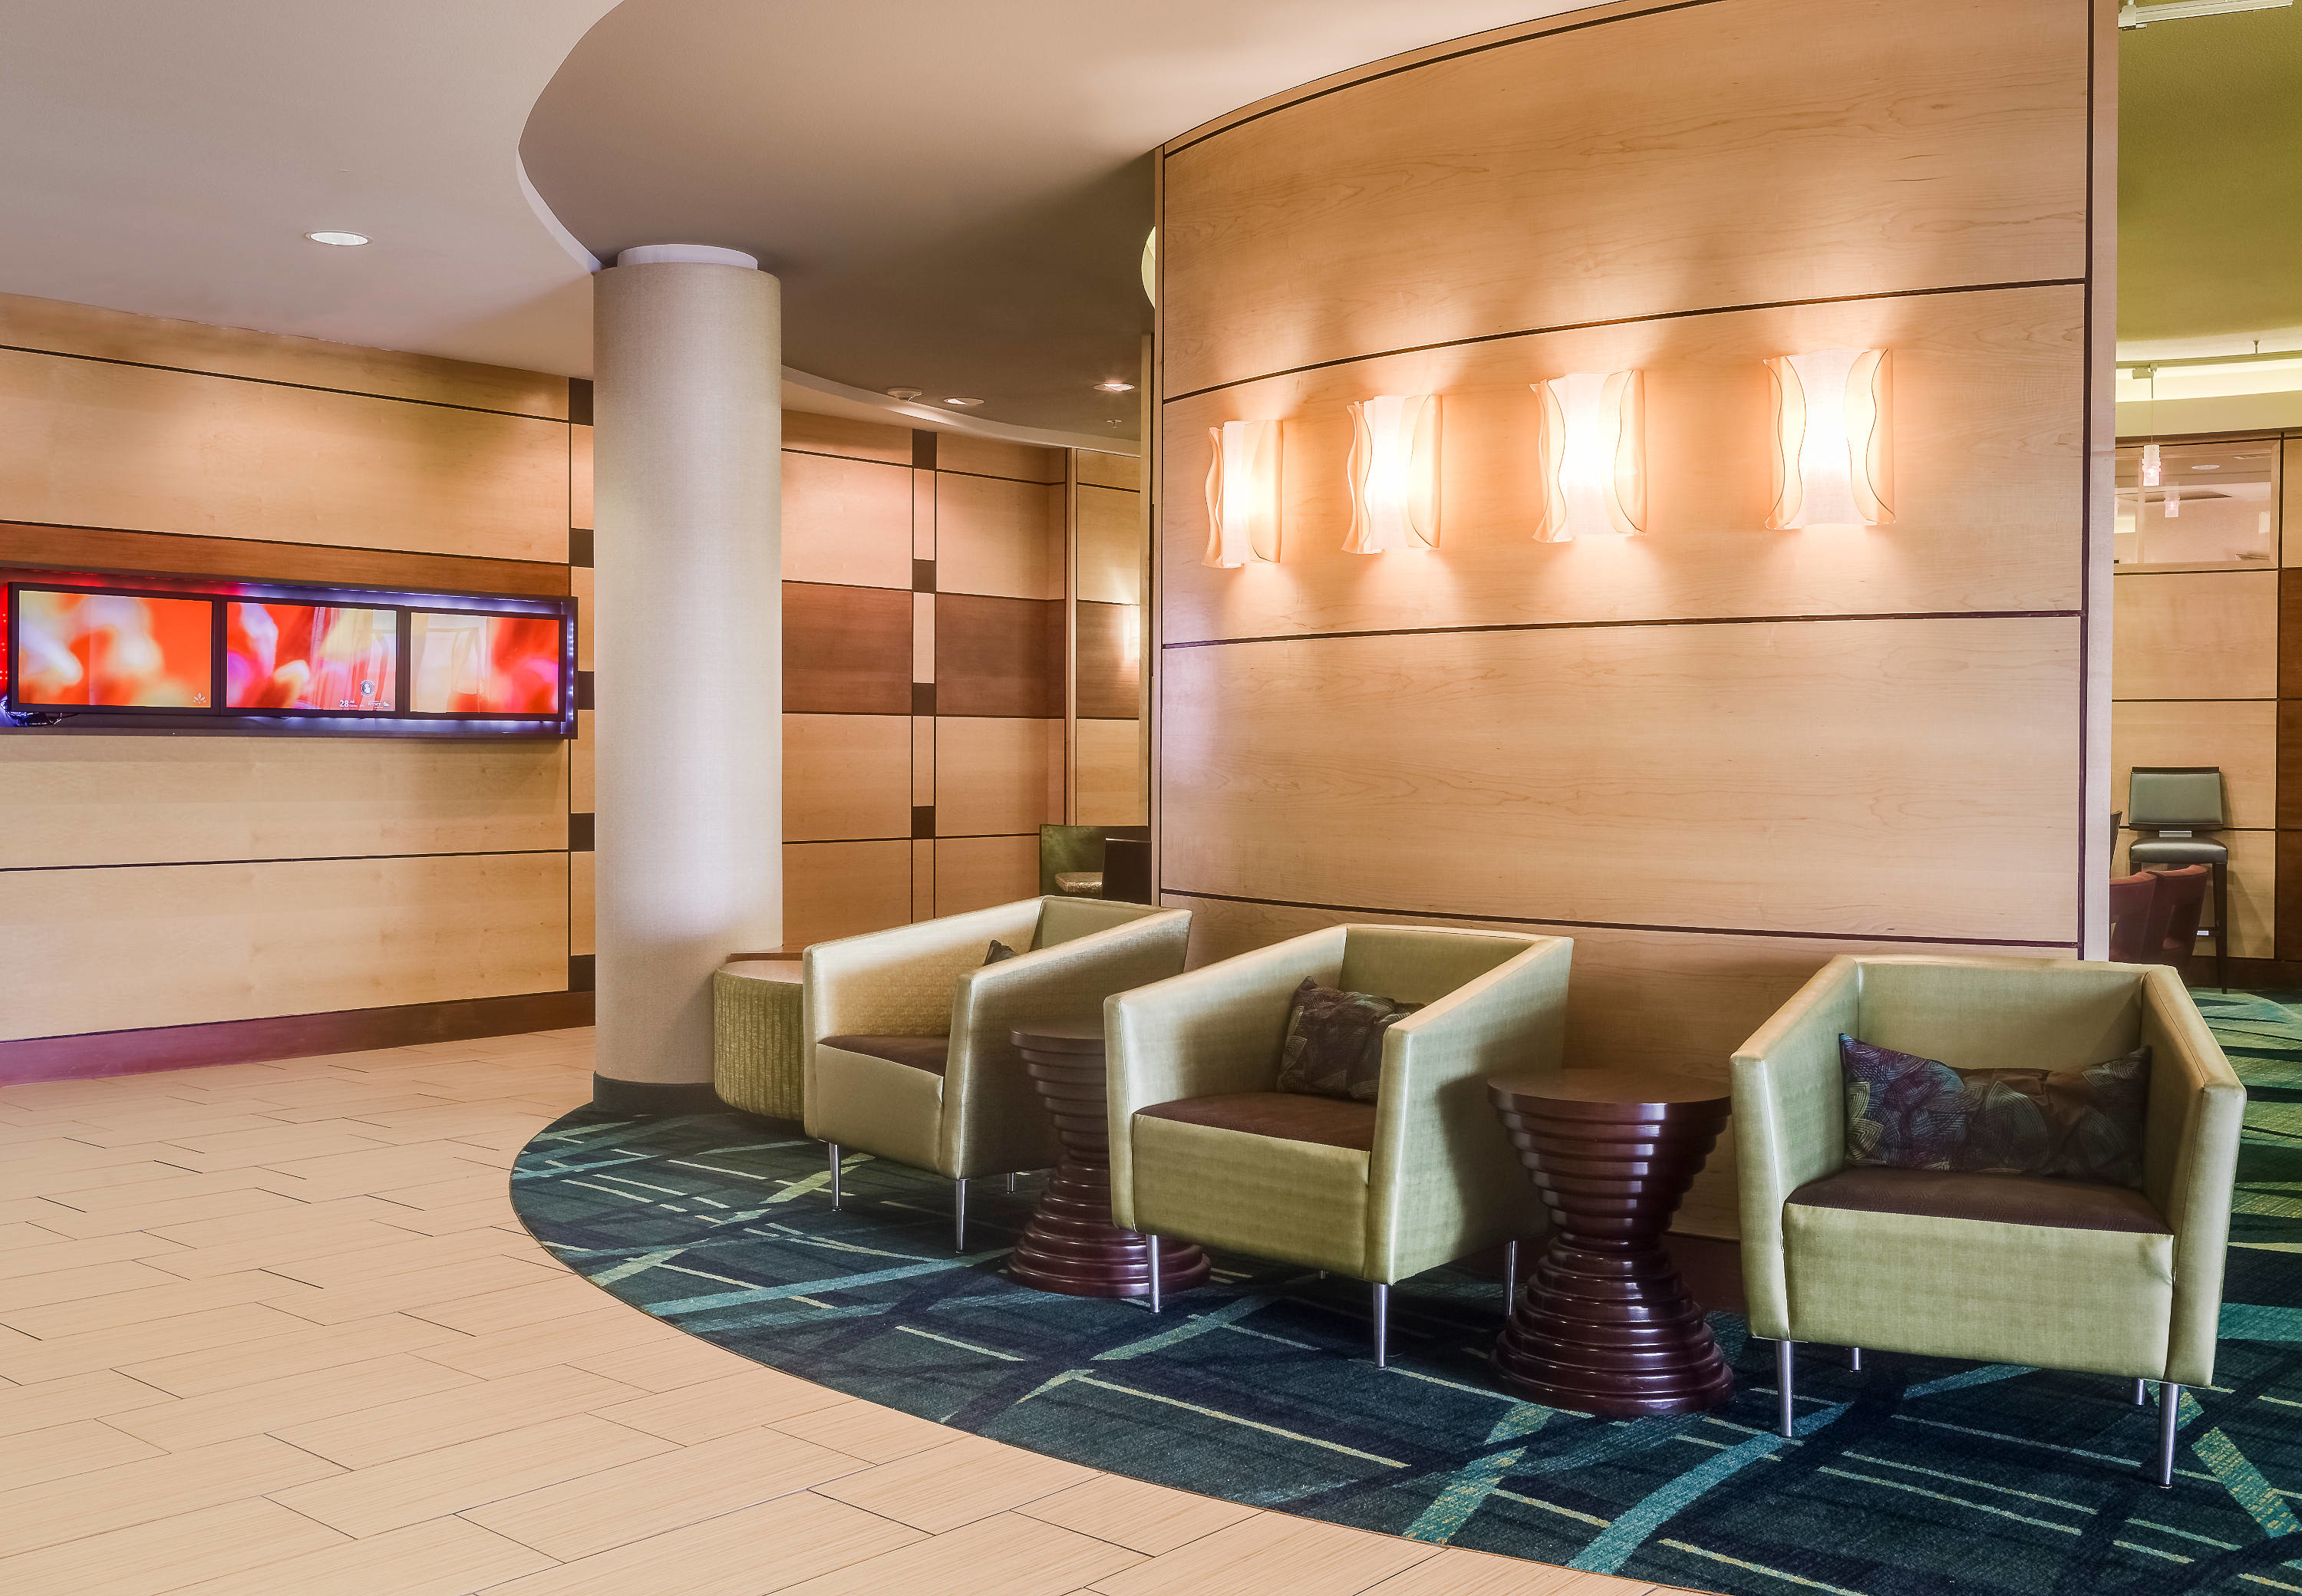 SpringHill Suites by Marriott Cheyenne image 6